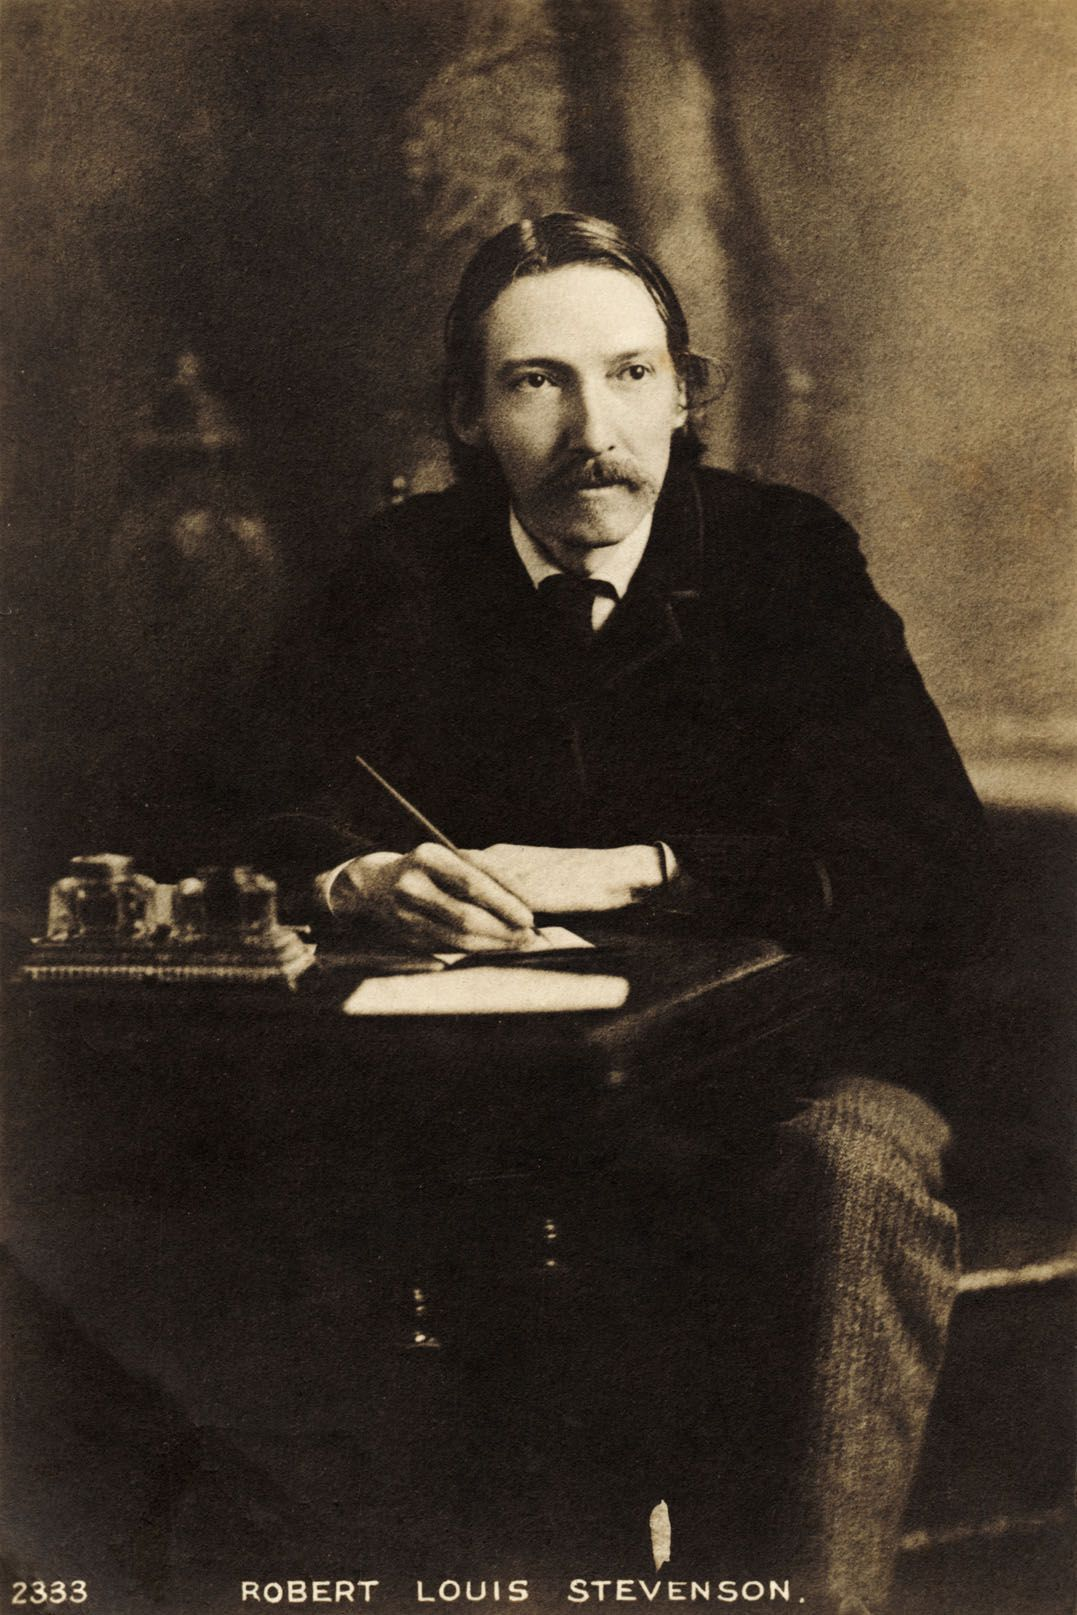 "robert louis stevenson little people essay And while i brood under the hunter's moon, i think about robert louis stevenson's ""an apology for idlers"" it's an apt connection to make i suppose stevenson's essay defends idle time in the face of steadfast ambition."